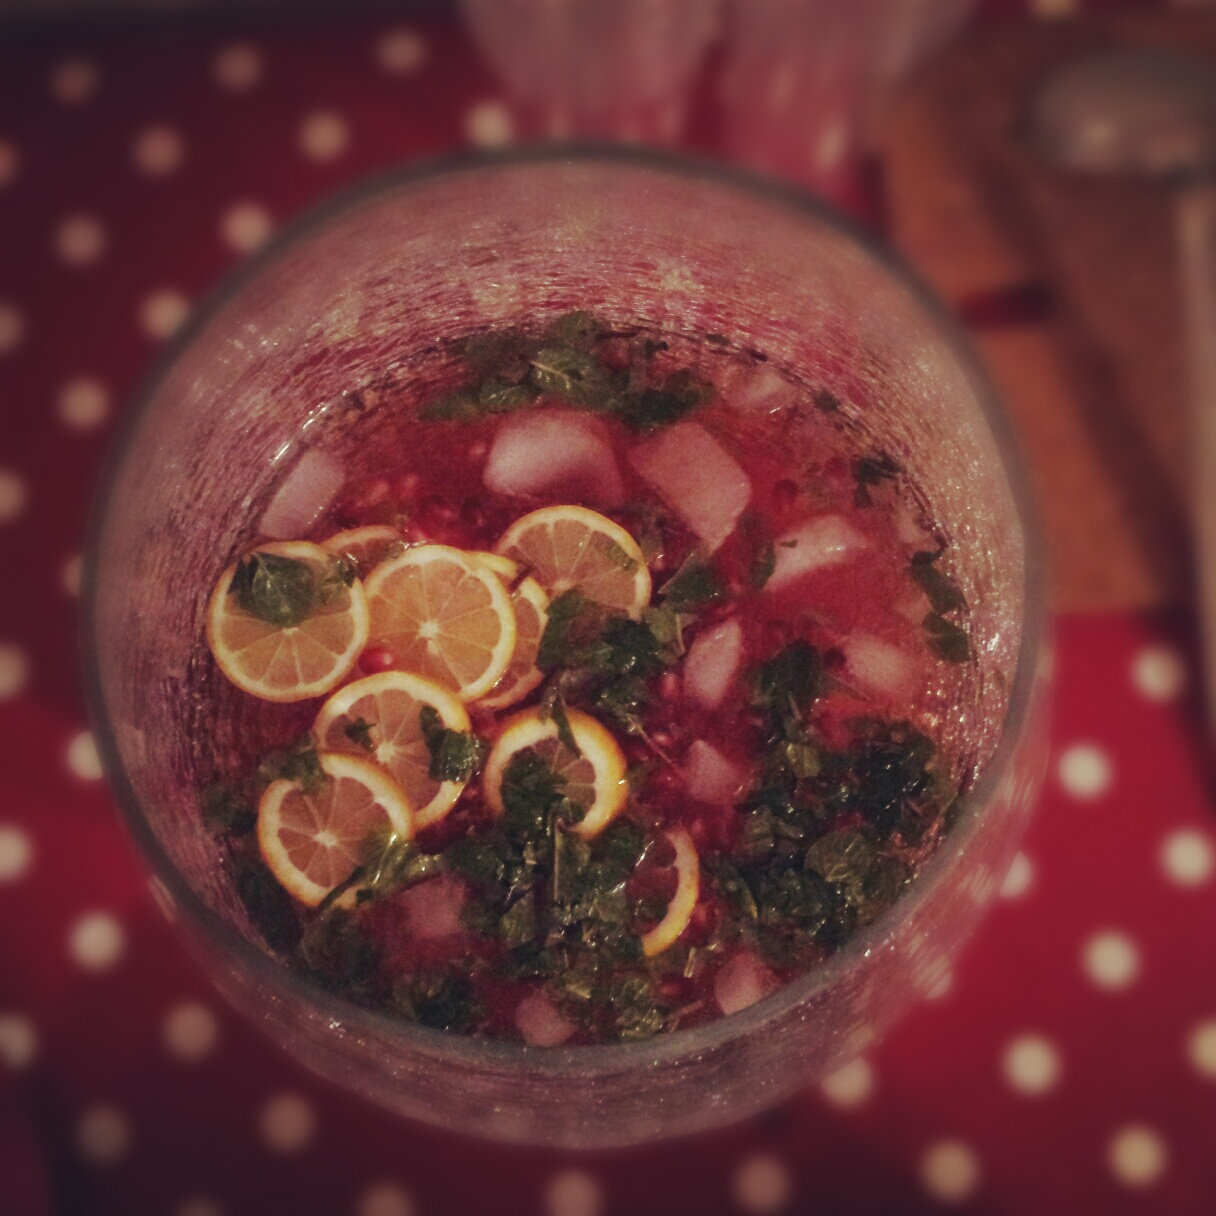 Champagne and pomegranate punch- recipe here! (Except I was cheap and used Cava instead...)